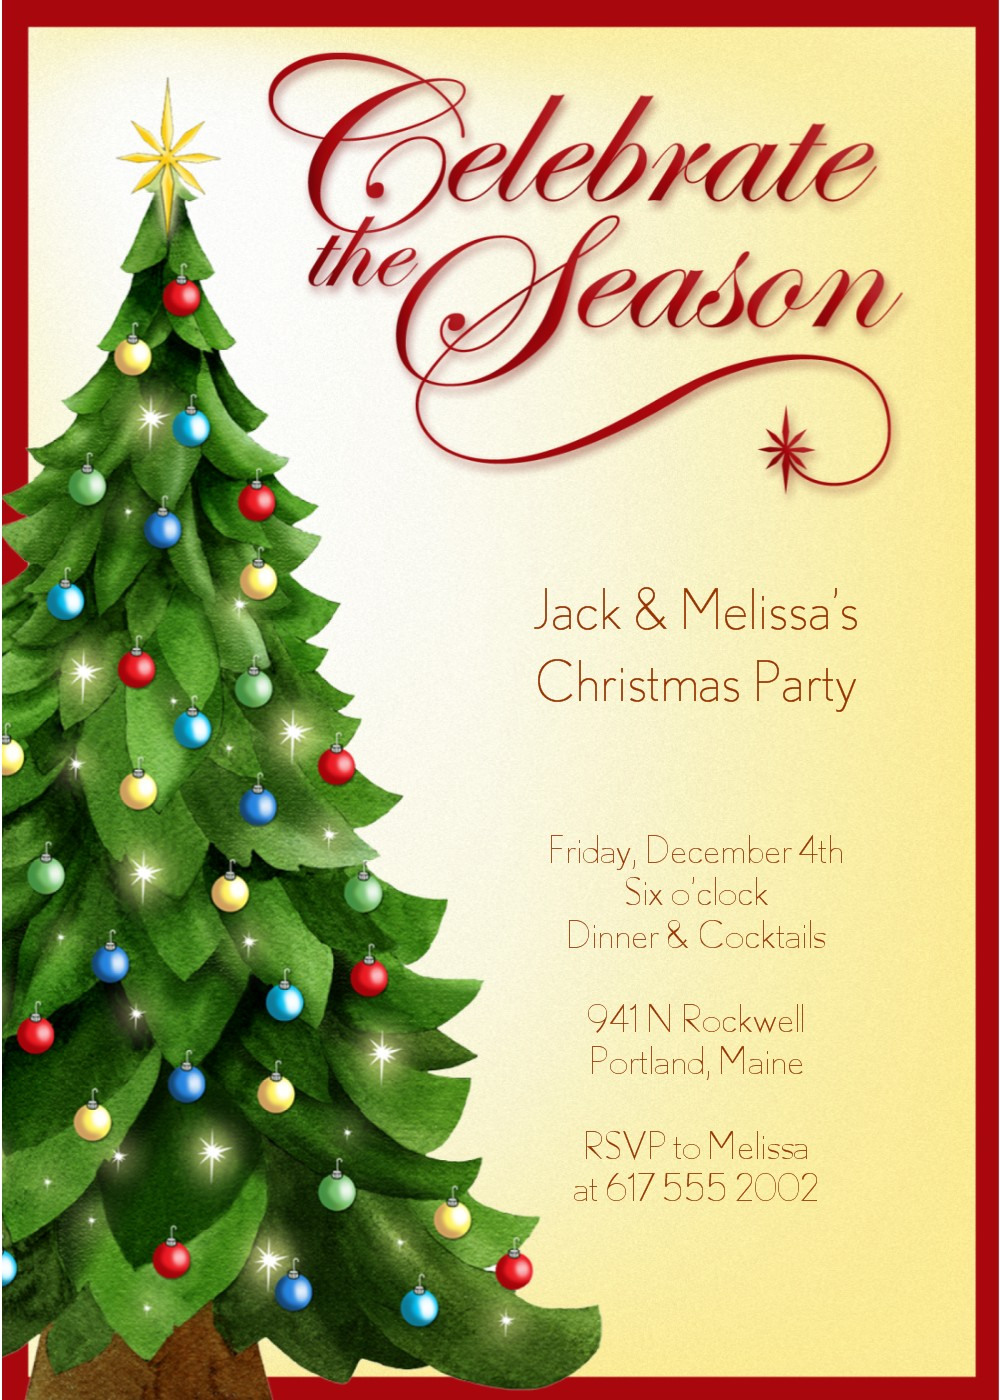 party invitation templates word mickey mouse invitations holiday party invitation templates word